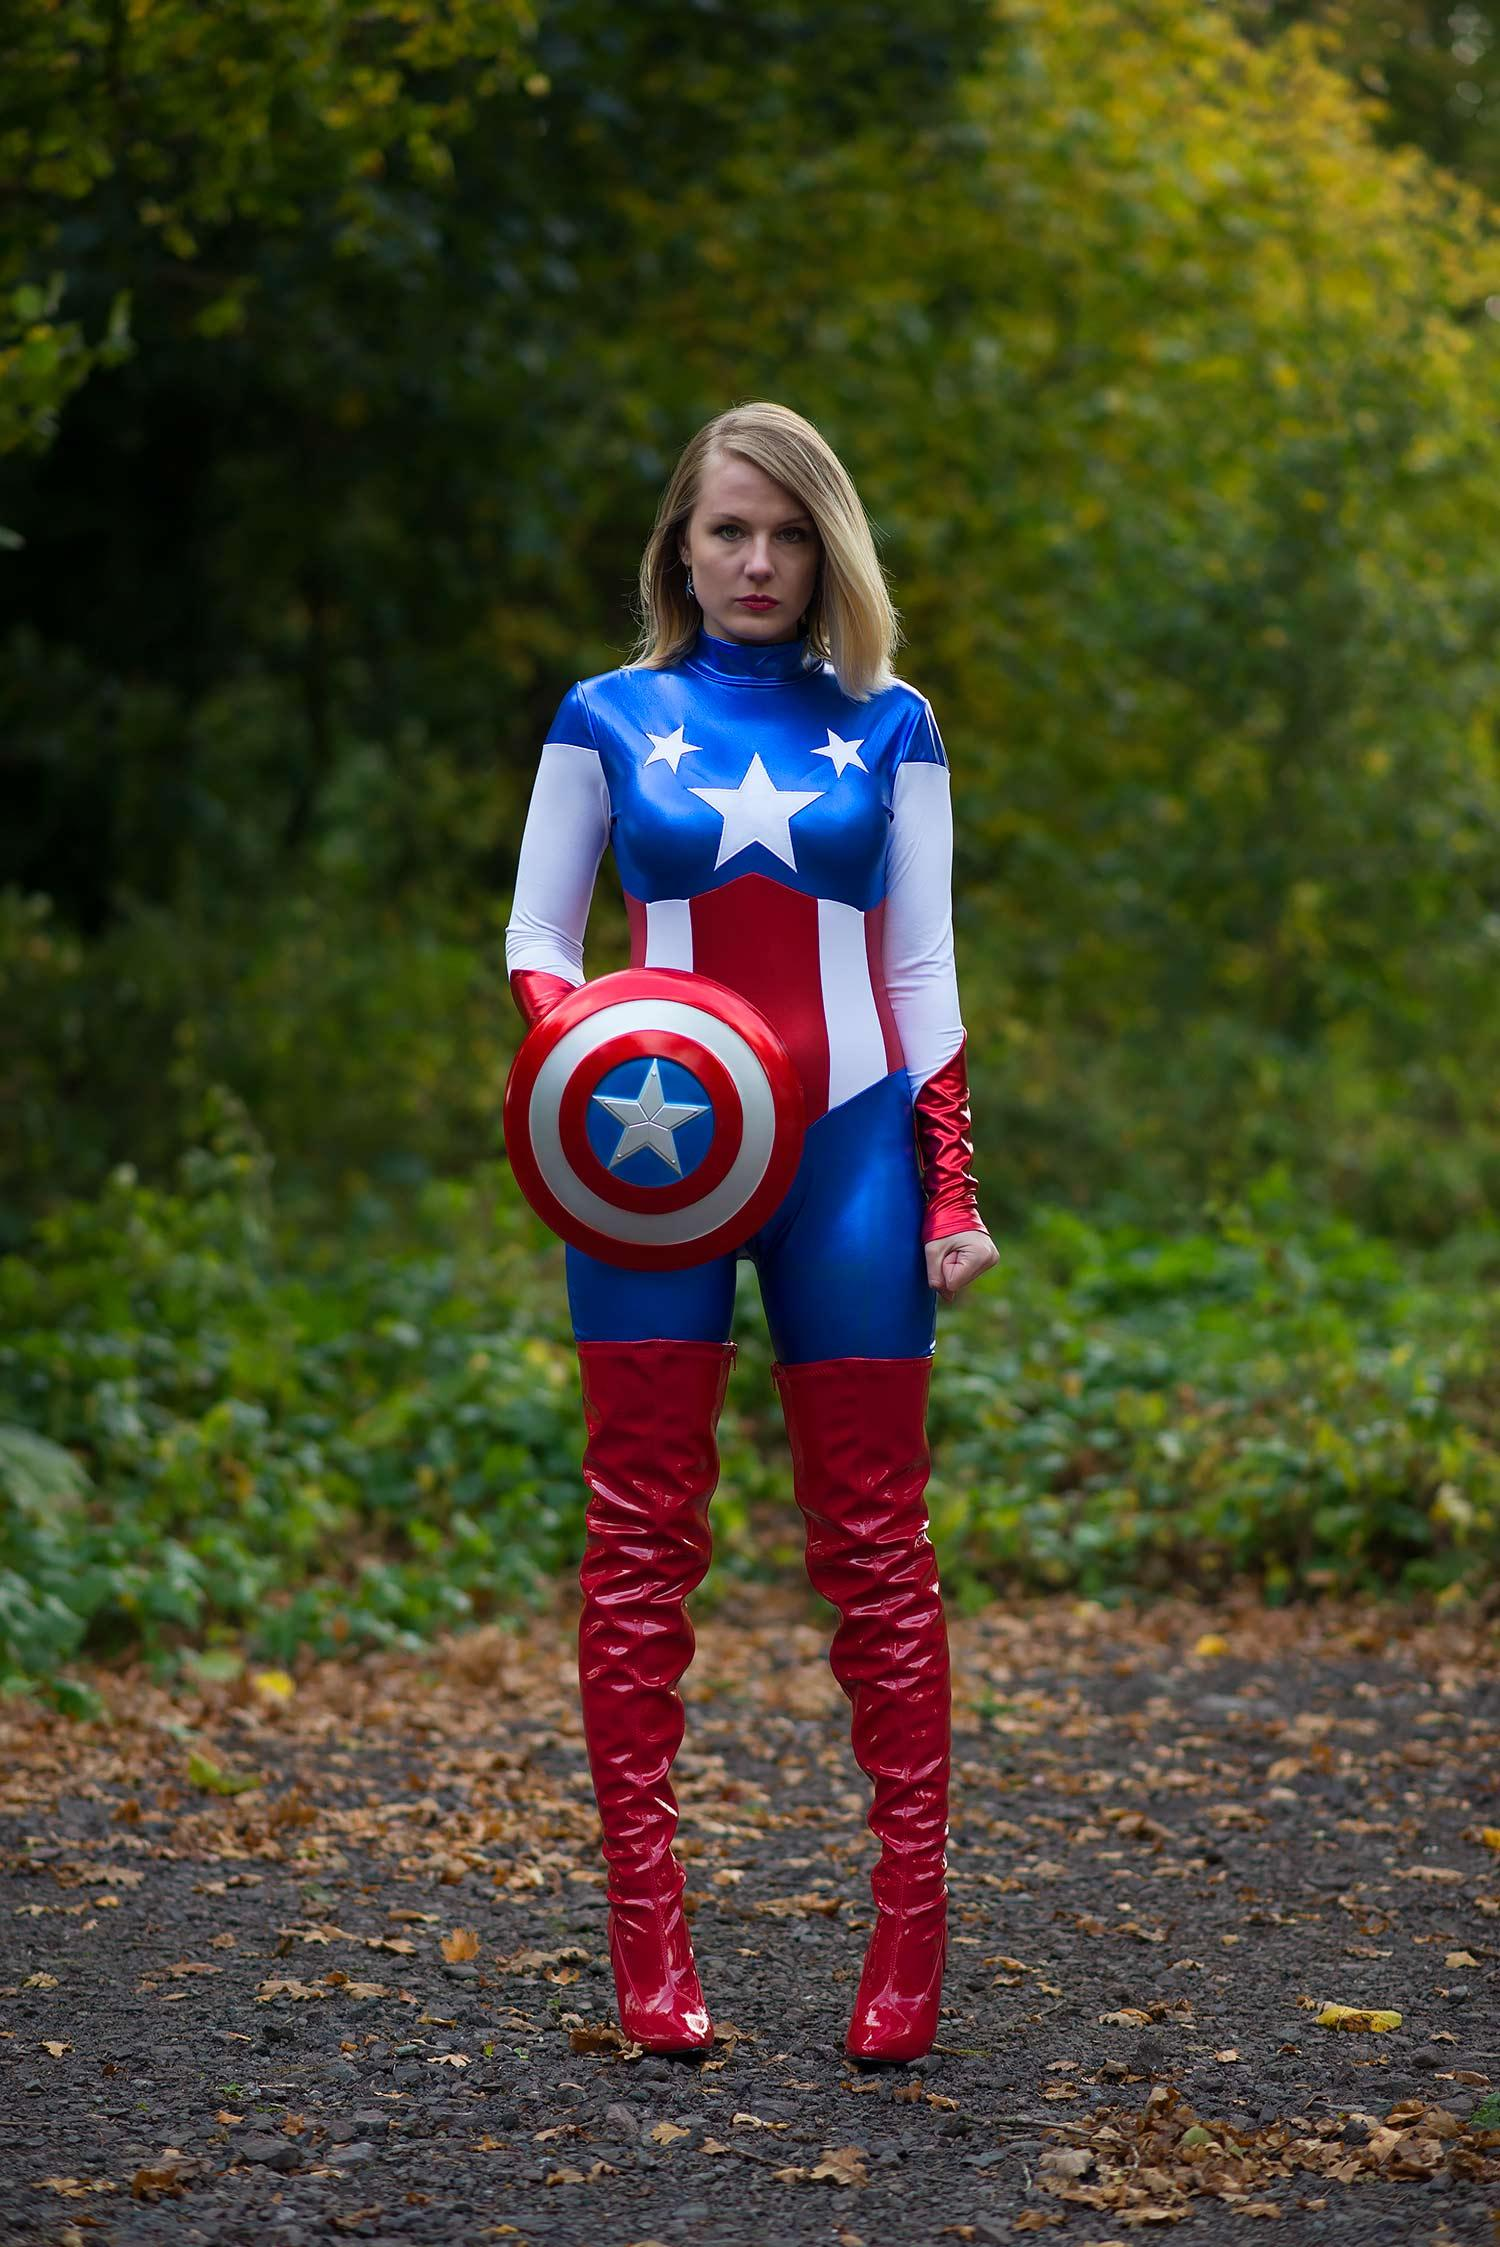 lorna-burford-miss-captain-america-costume-girl-6